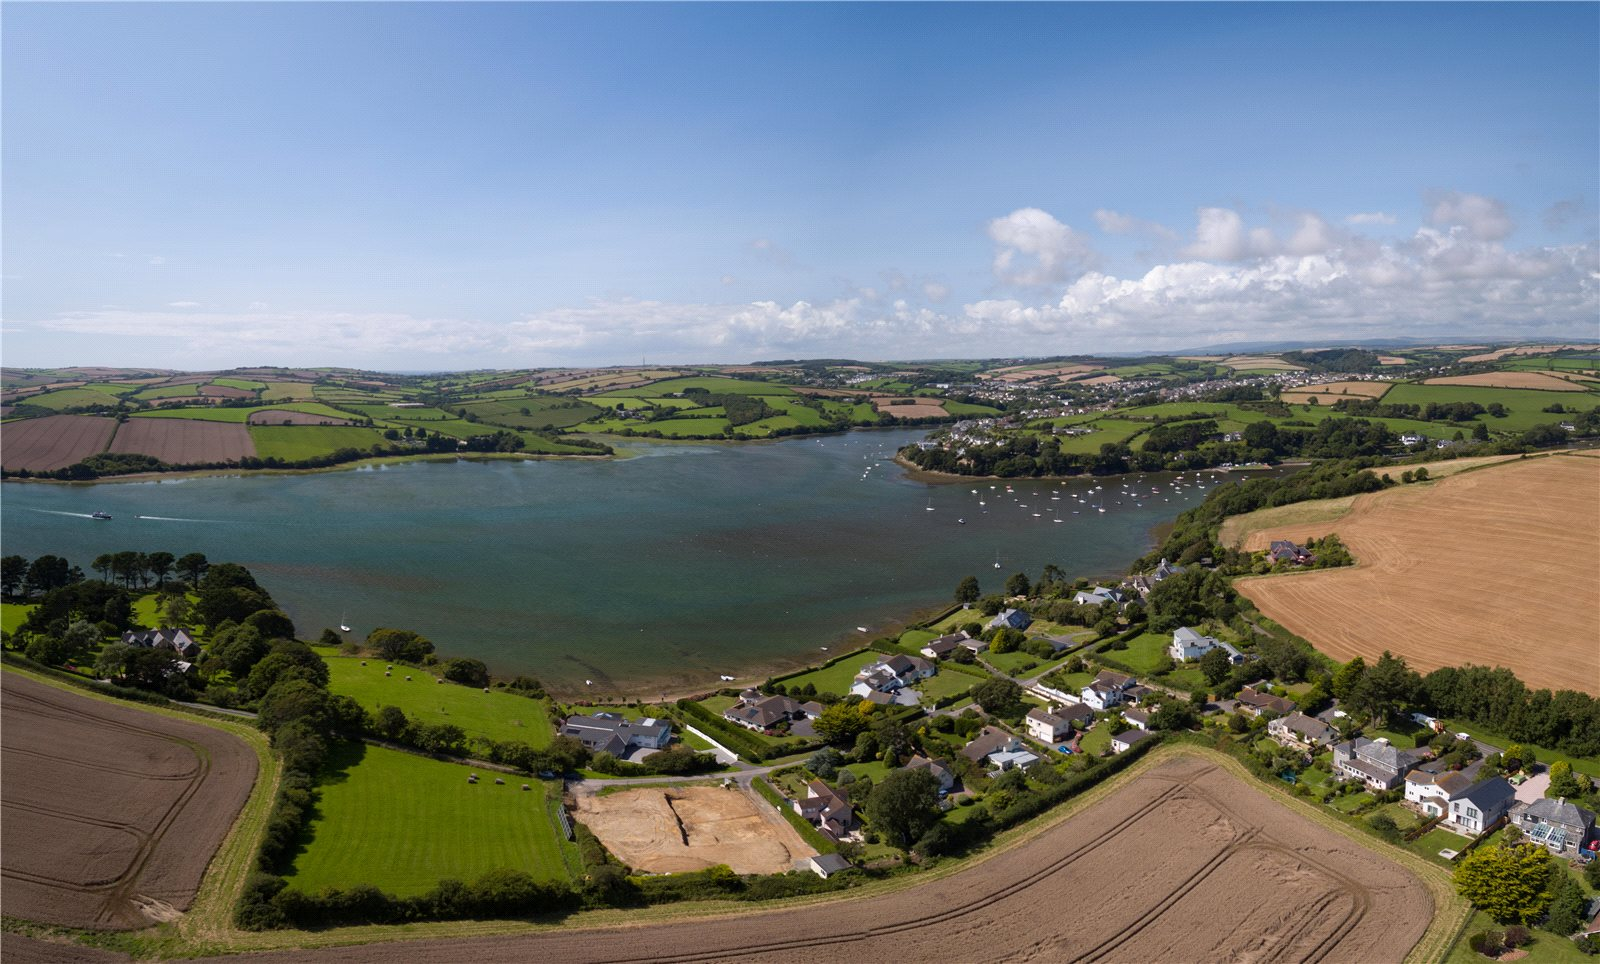 Single Family Home for Sale at Curlew Drive, West Charleton, Kingsbridge, Devon, TQ7 Kingsbridge, England